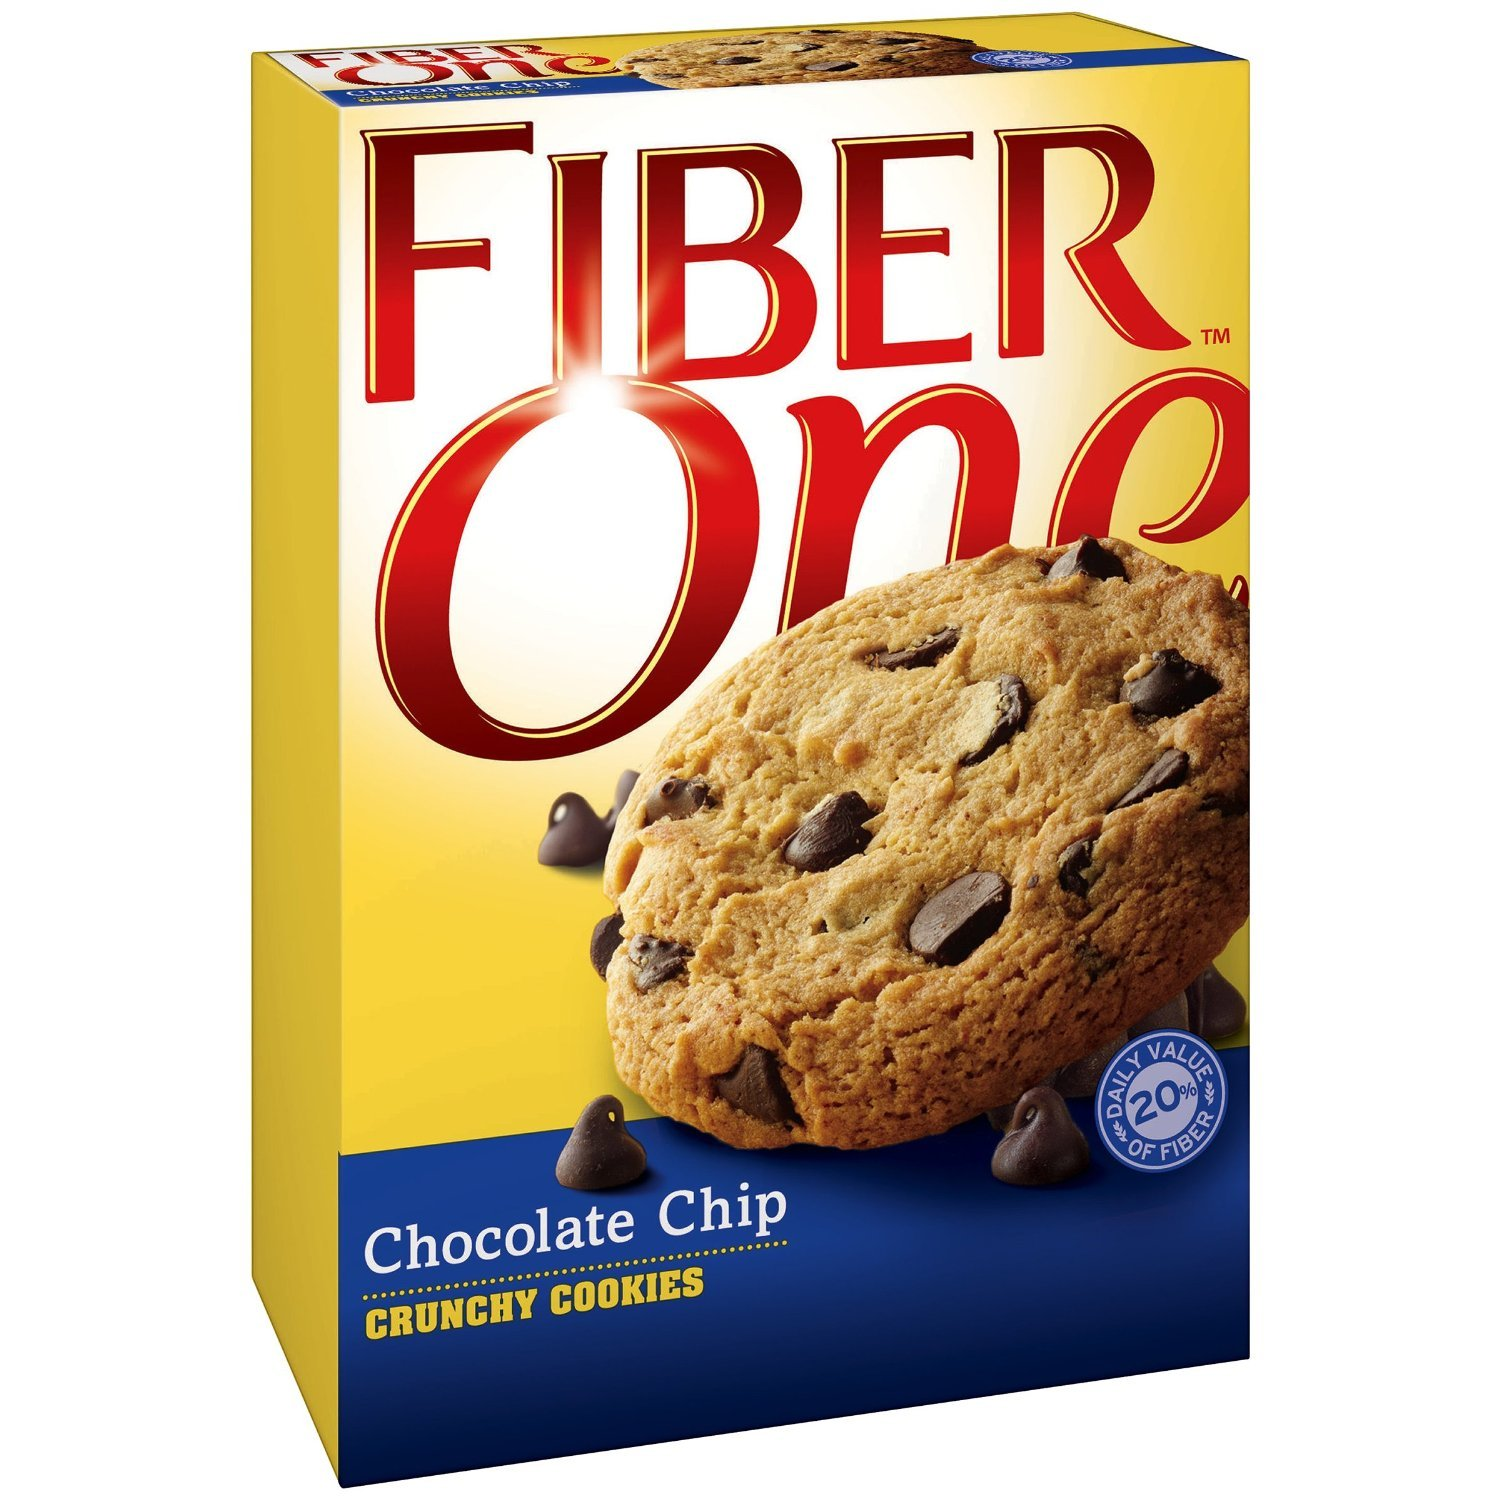 Fiber One NEW! Crunchy CHOCOLATE CHIP Cookies + FREE 19 oz Sports Beverage Bottle. 6 Cookies in Each Box (6 PACK). A total of 36 delicious cookies. You'll be one smart cookie!